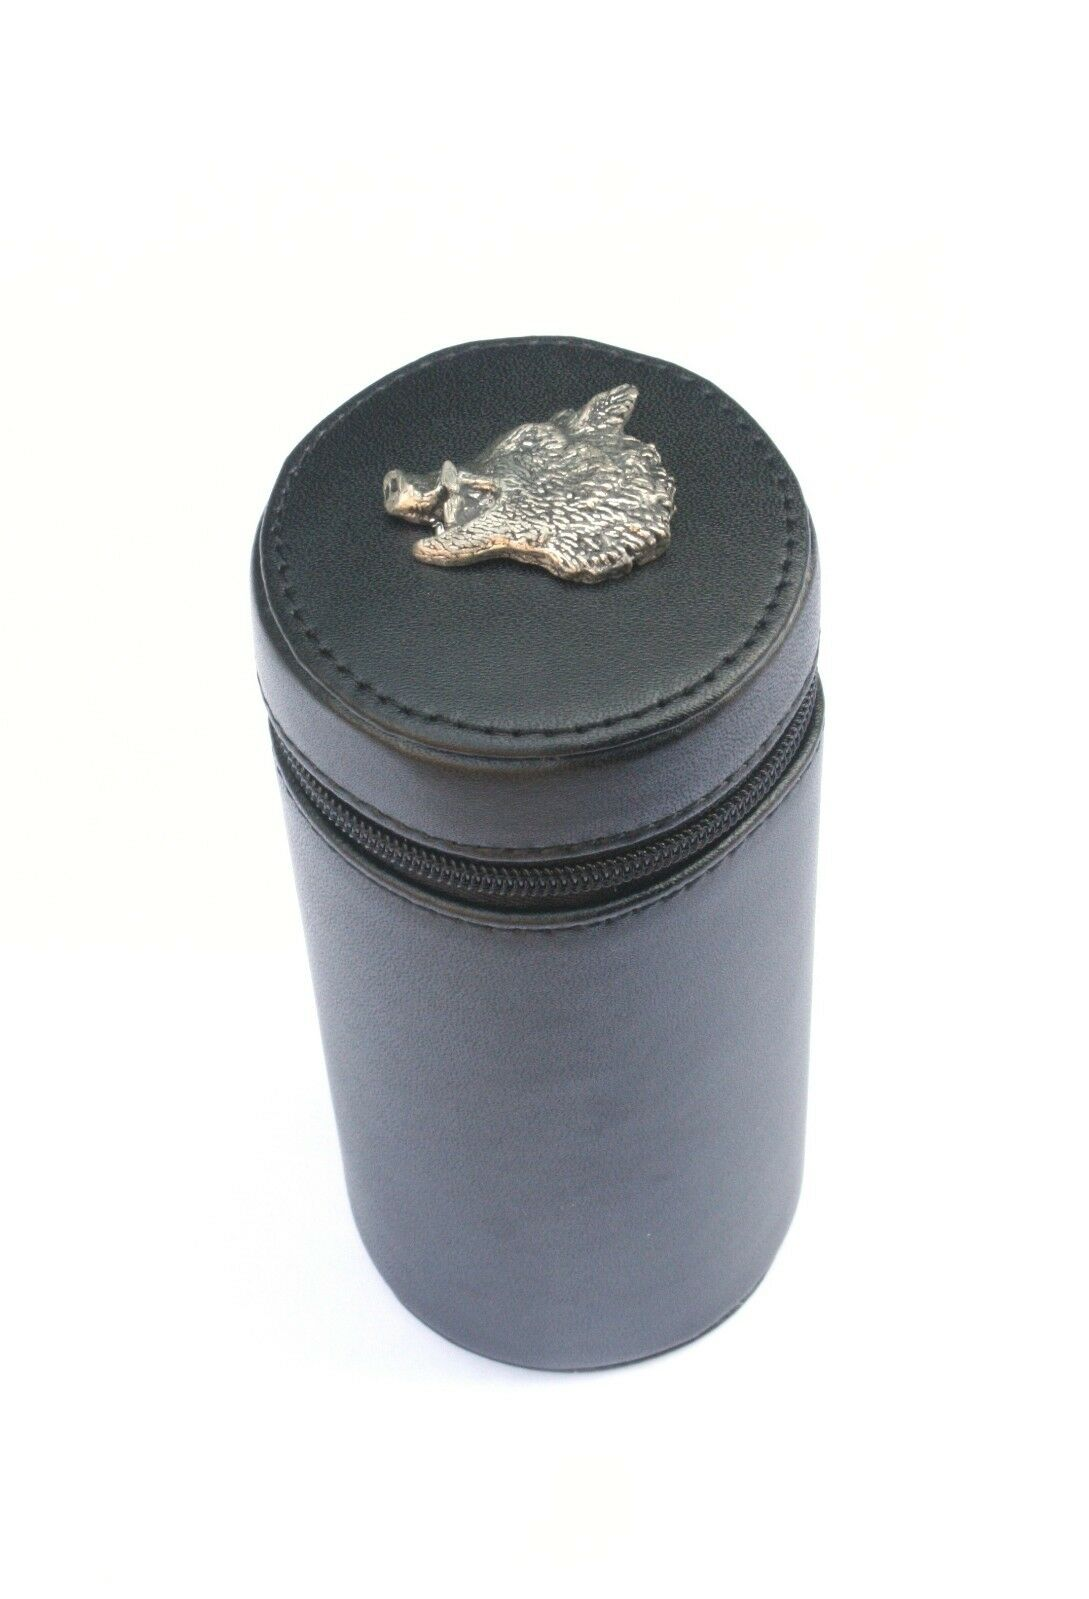 Boar Head Shooting Peg Position Finder Numberojo Cups 1-10 negro Leather Case